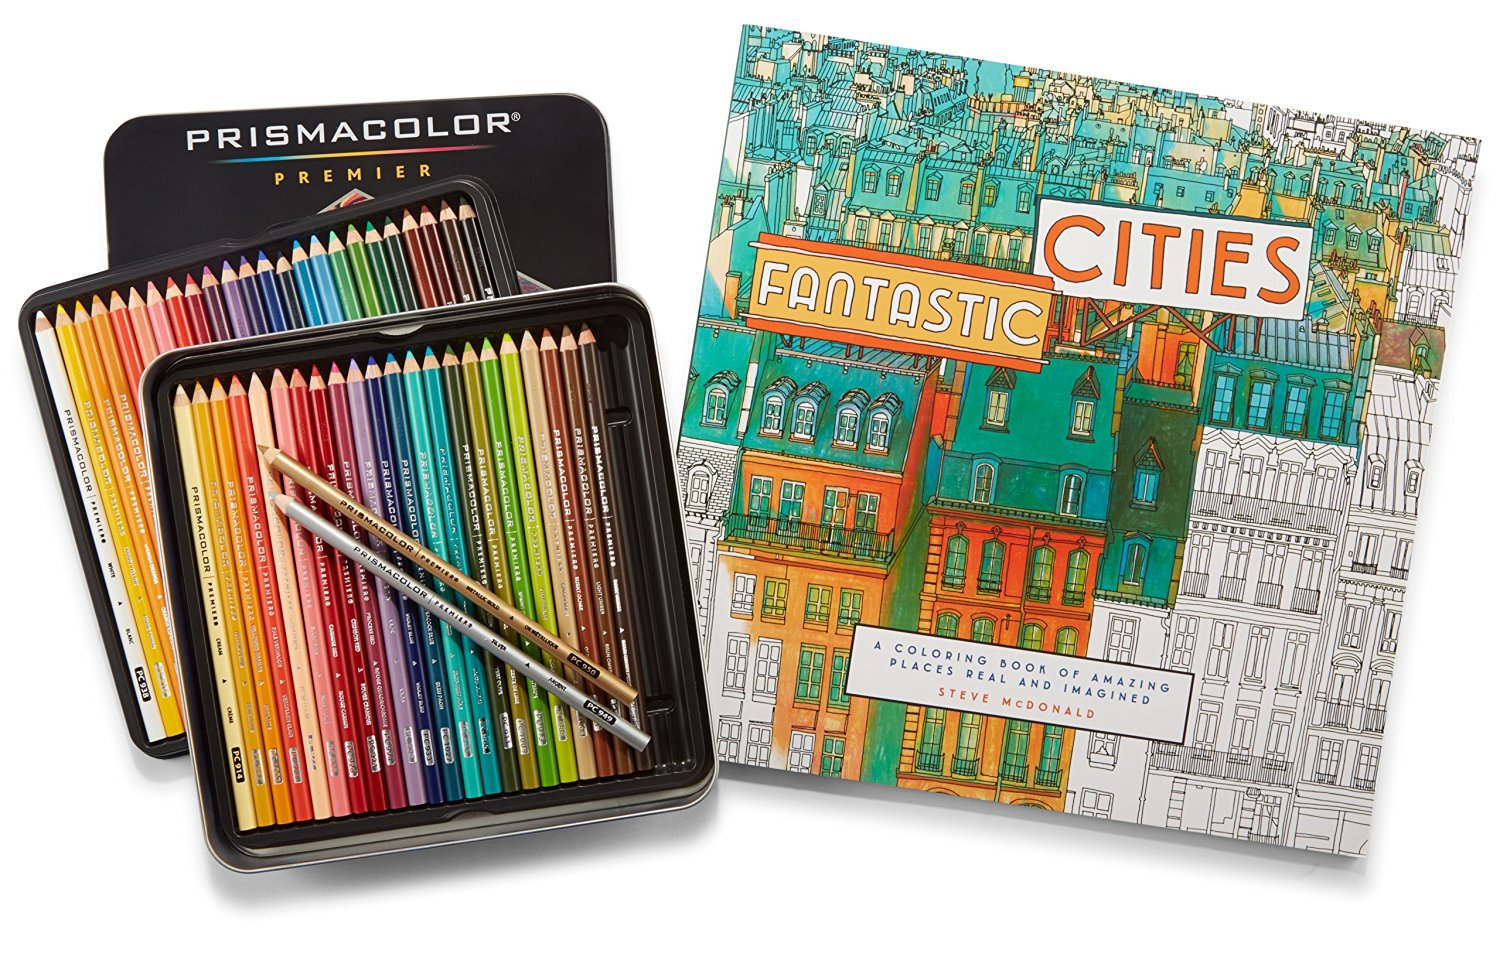 Prismacolor Premier Colored Pencils, Soft Core, 48 Pack and Adult Coloring Book (Fantastic Cities)